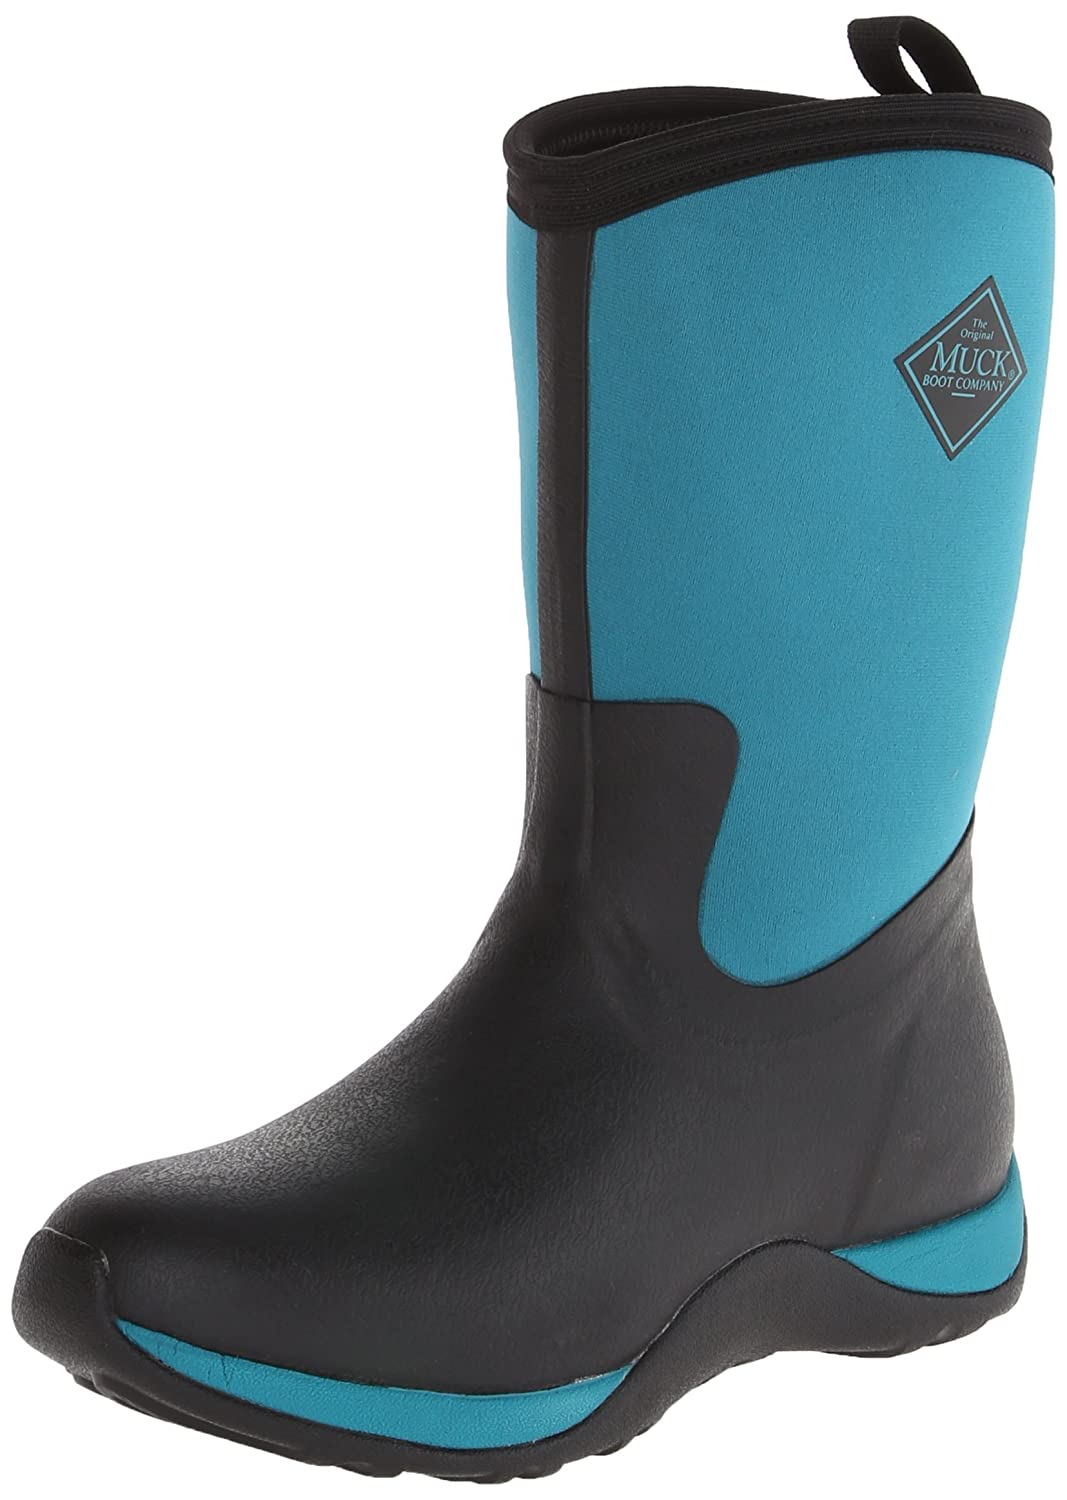 MuckBoots Women's Arctic Weekend Snow Boot B00IHW8VGS 10 B(M) US|Harbor Blue